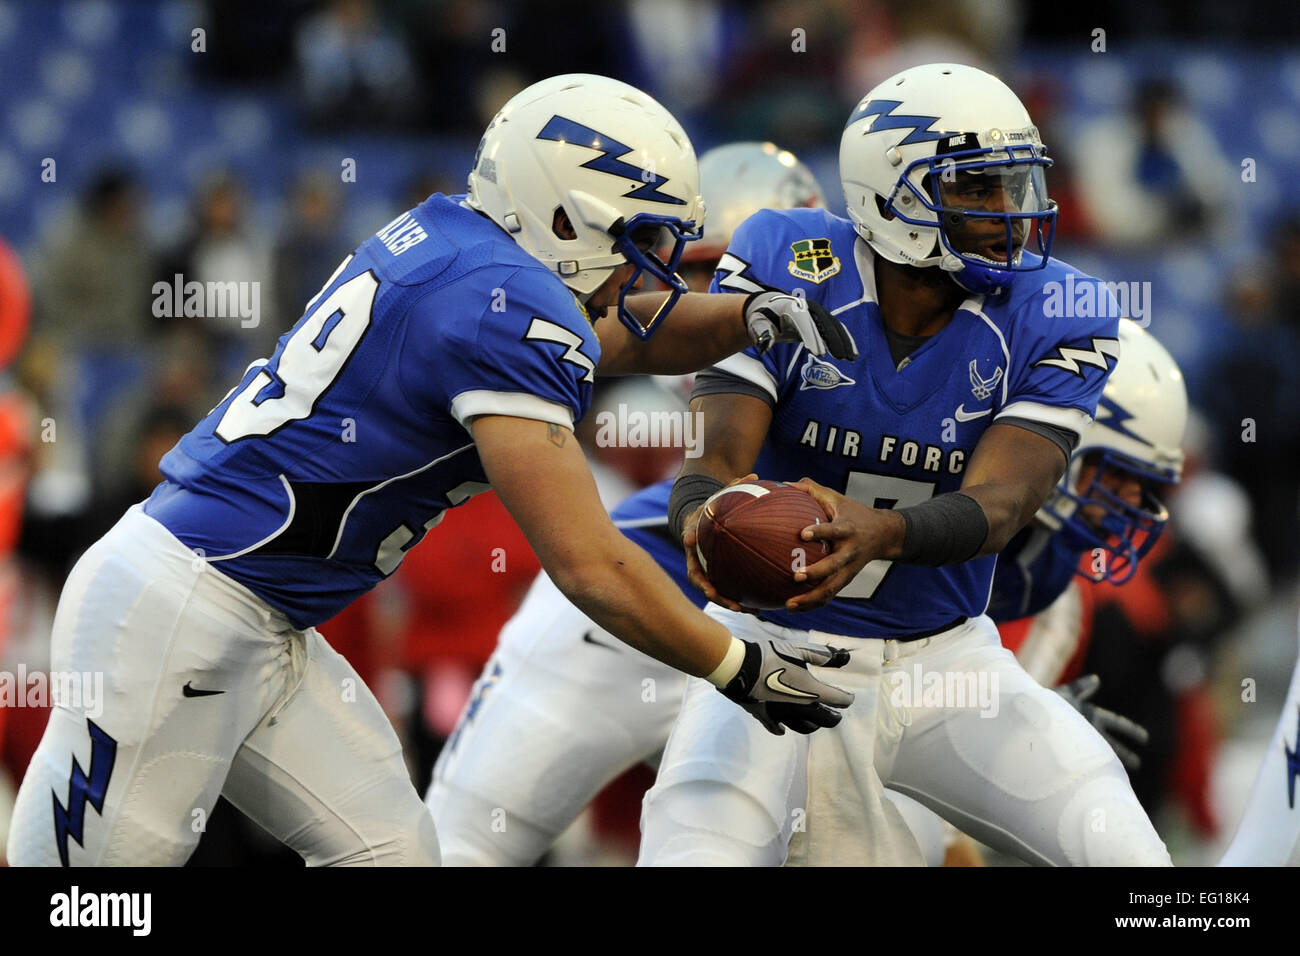 U.S. Air Force Academy Senior running back Nathan Walker takes the handoff from quarterback Tim Jefferson during - Stock Image